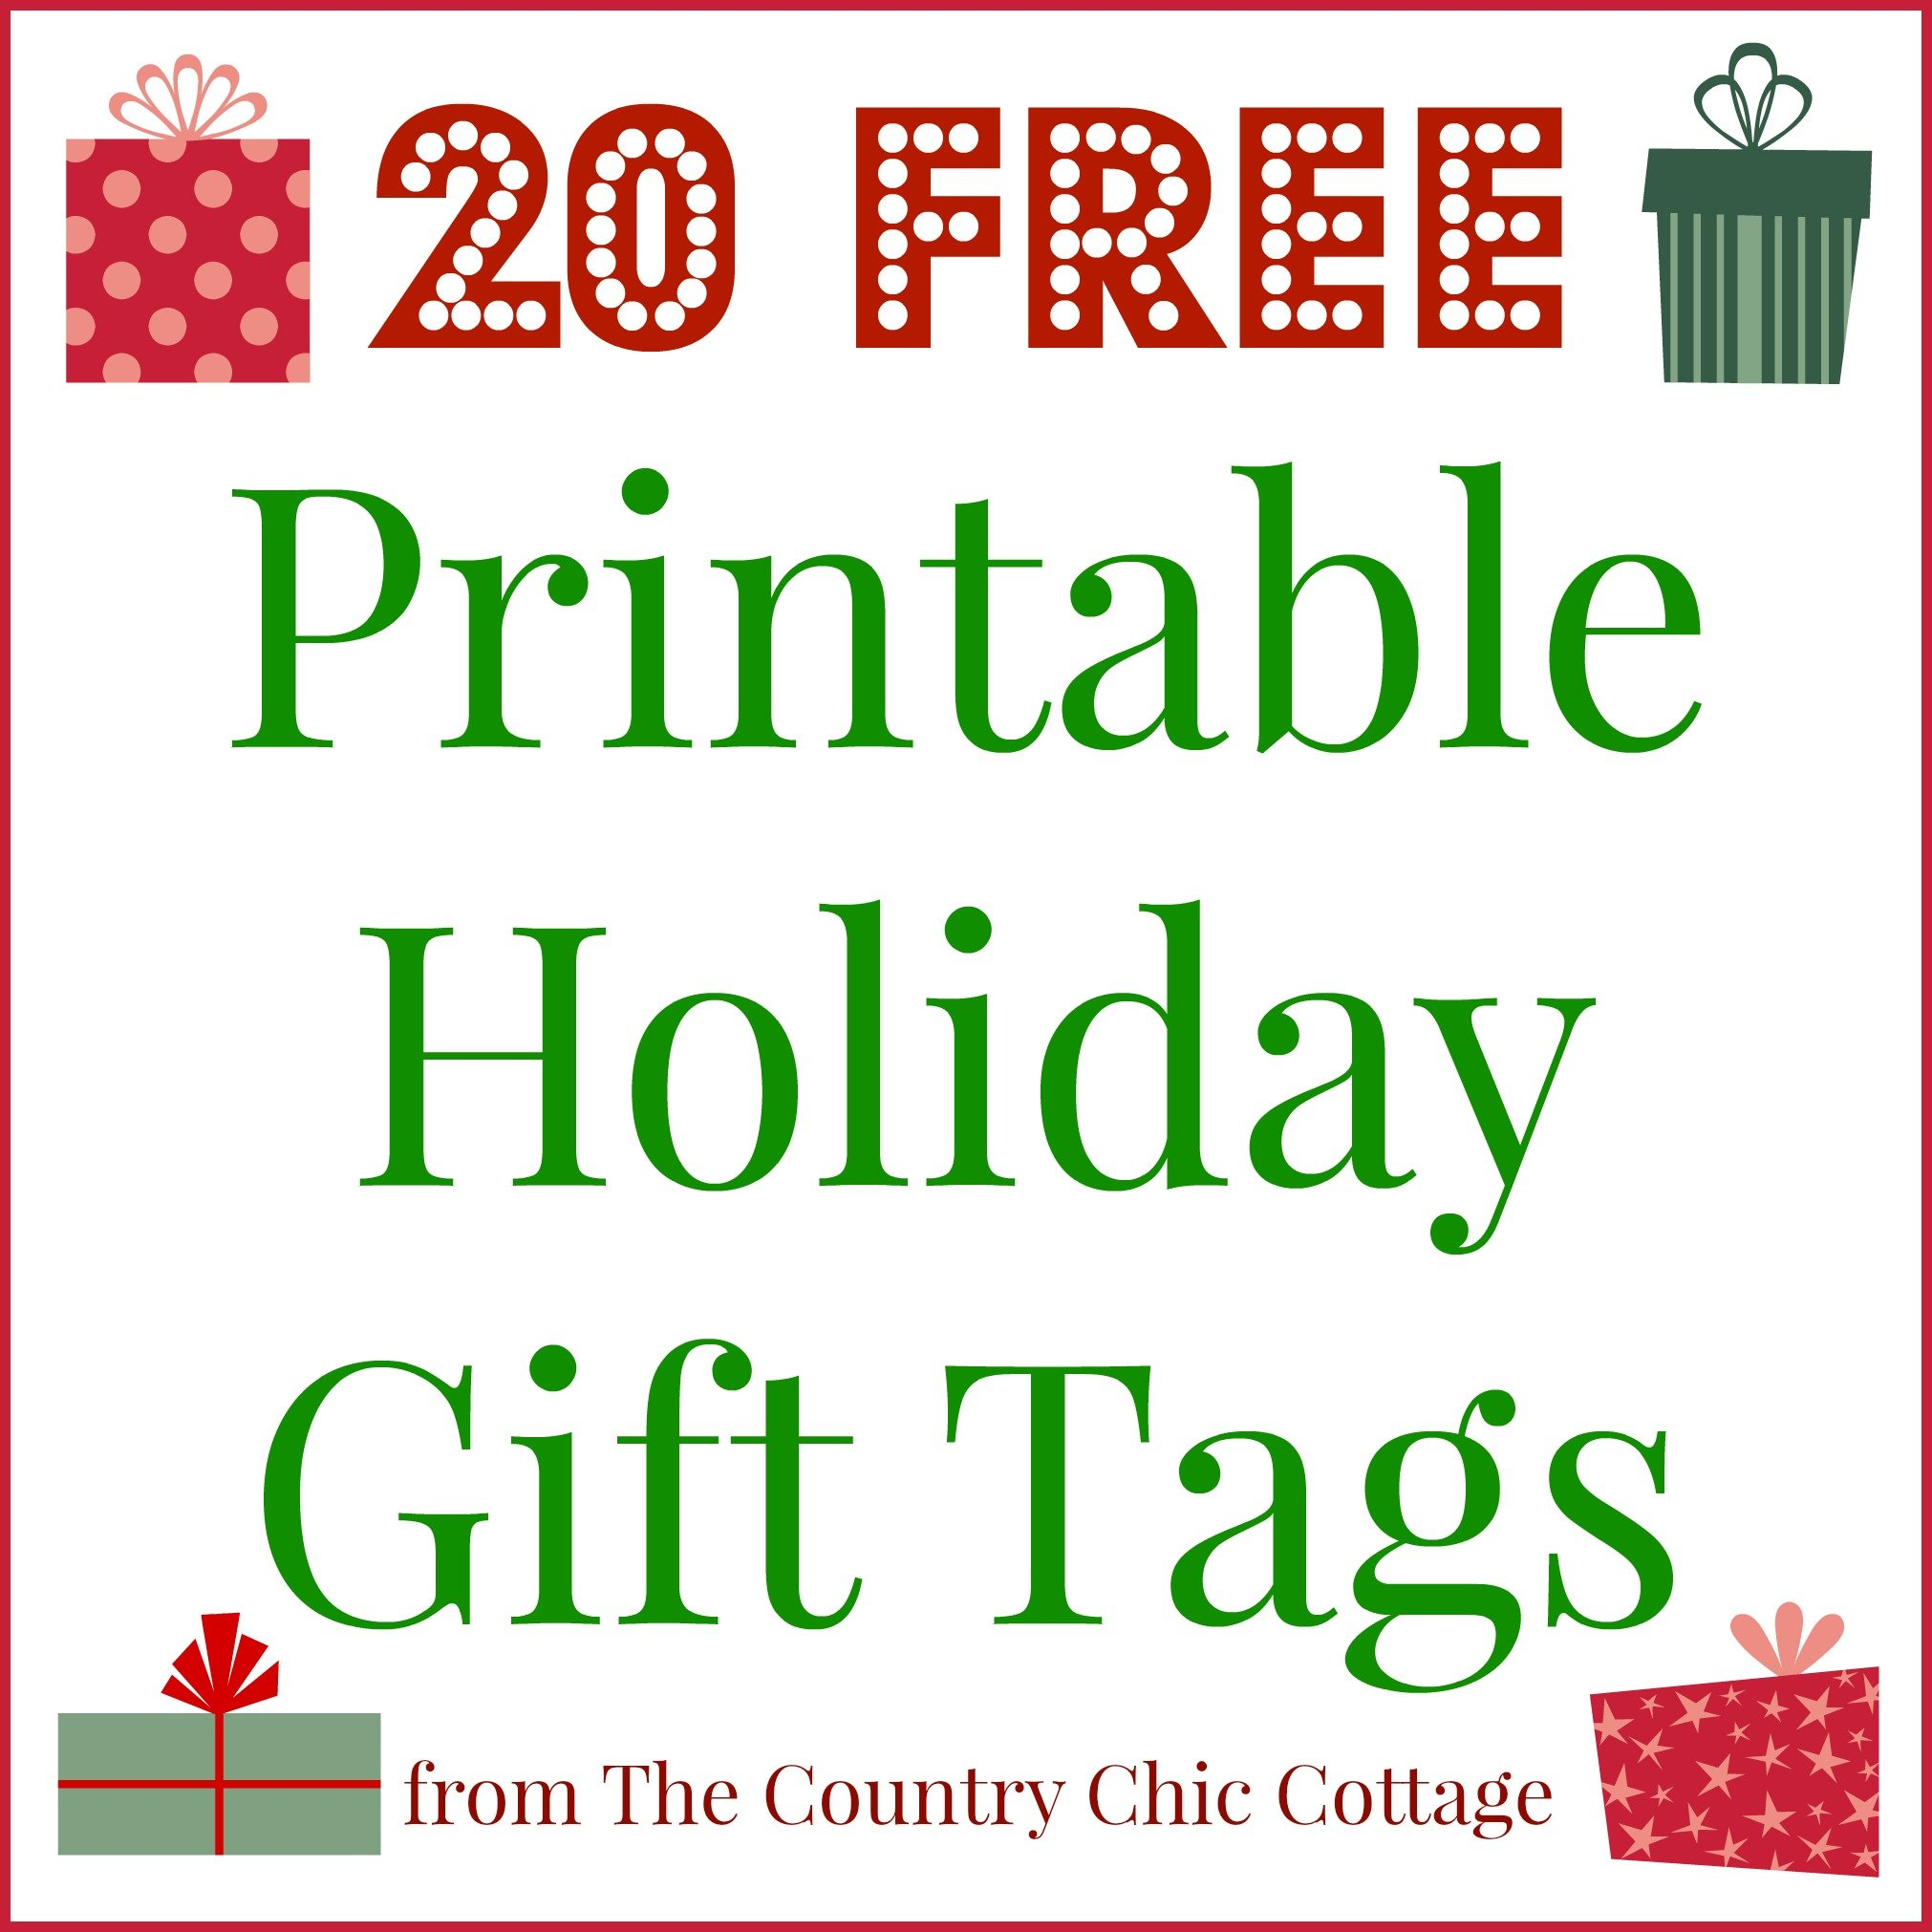 image about Printable Christmas Gifts named 20 Printable Holiday vacation Present Tags (FOR Cost-free!!) - The Place